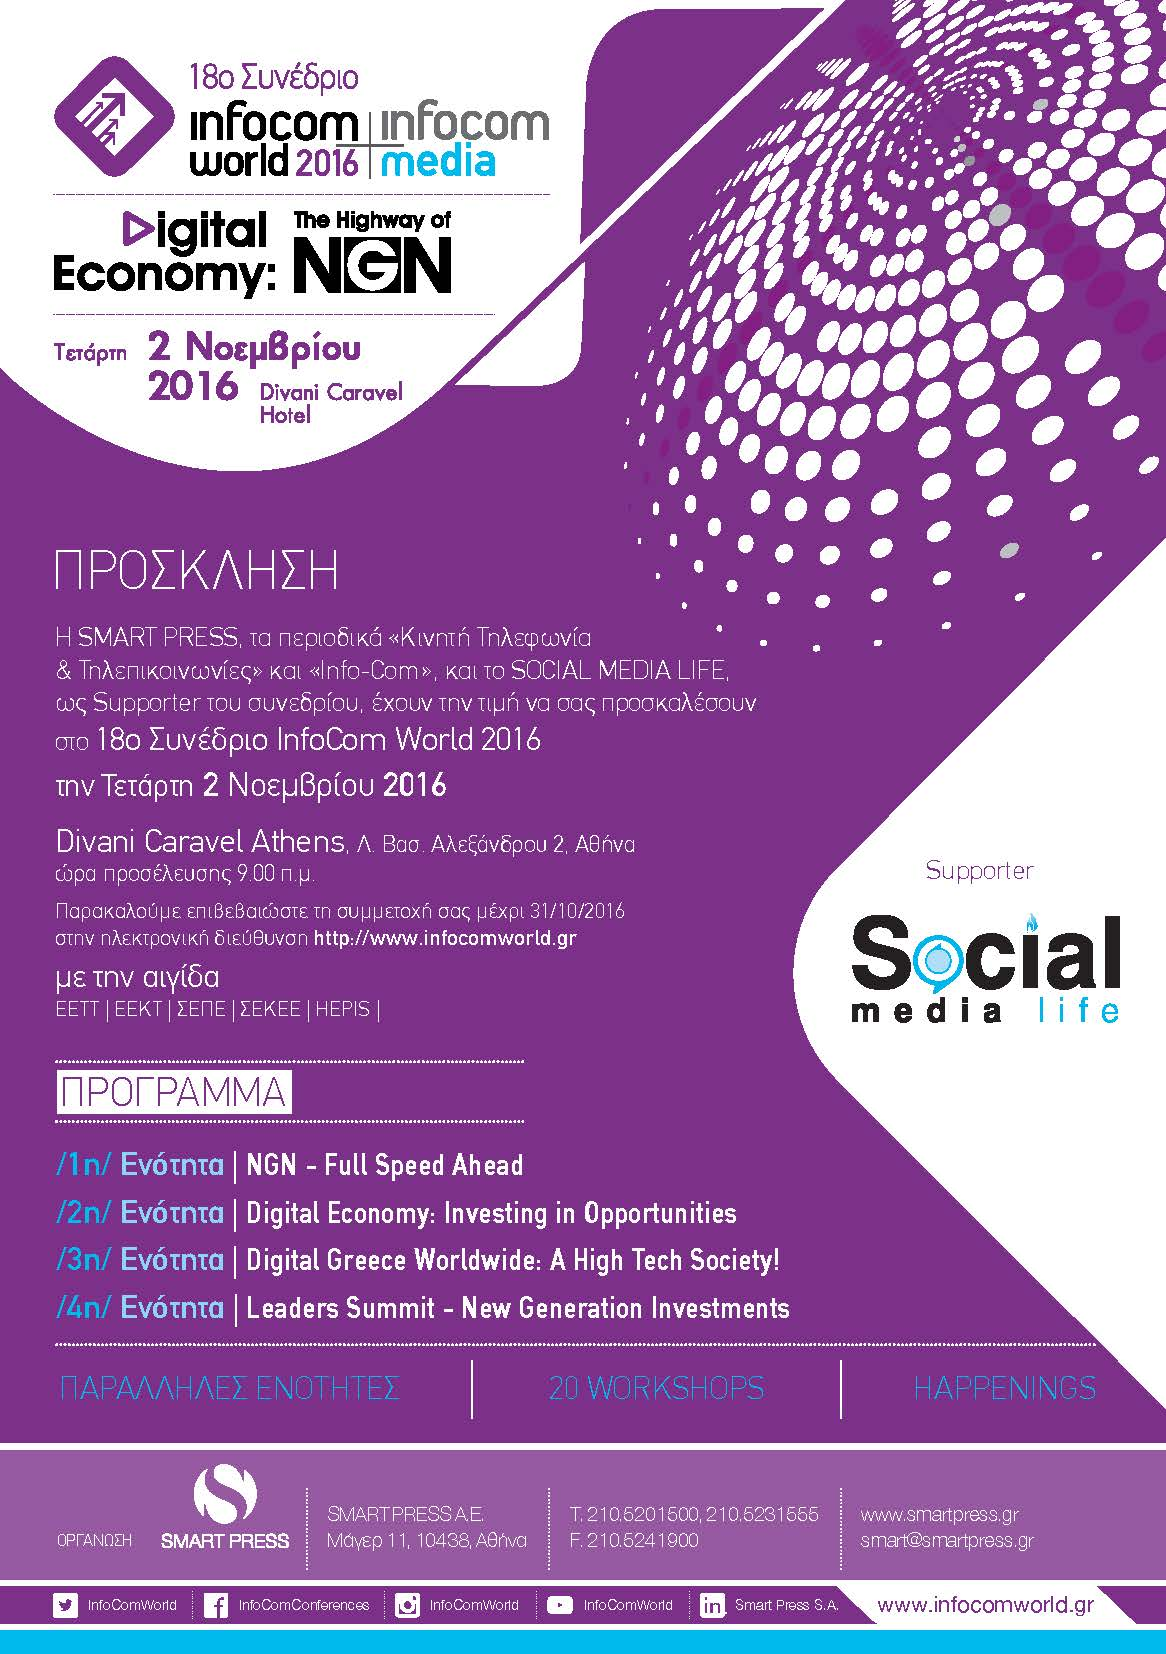 social-media-life-ic2016-invitation